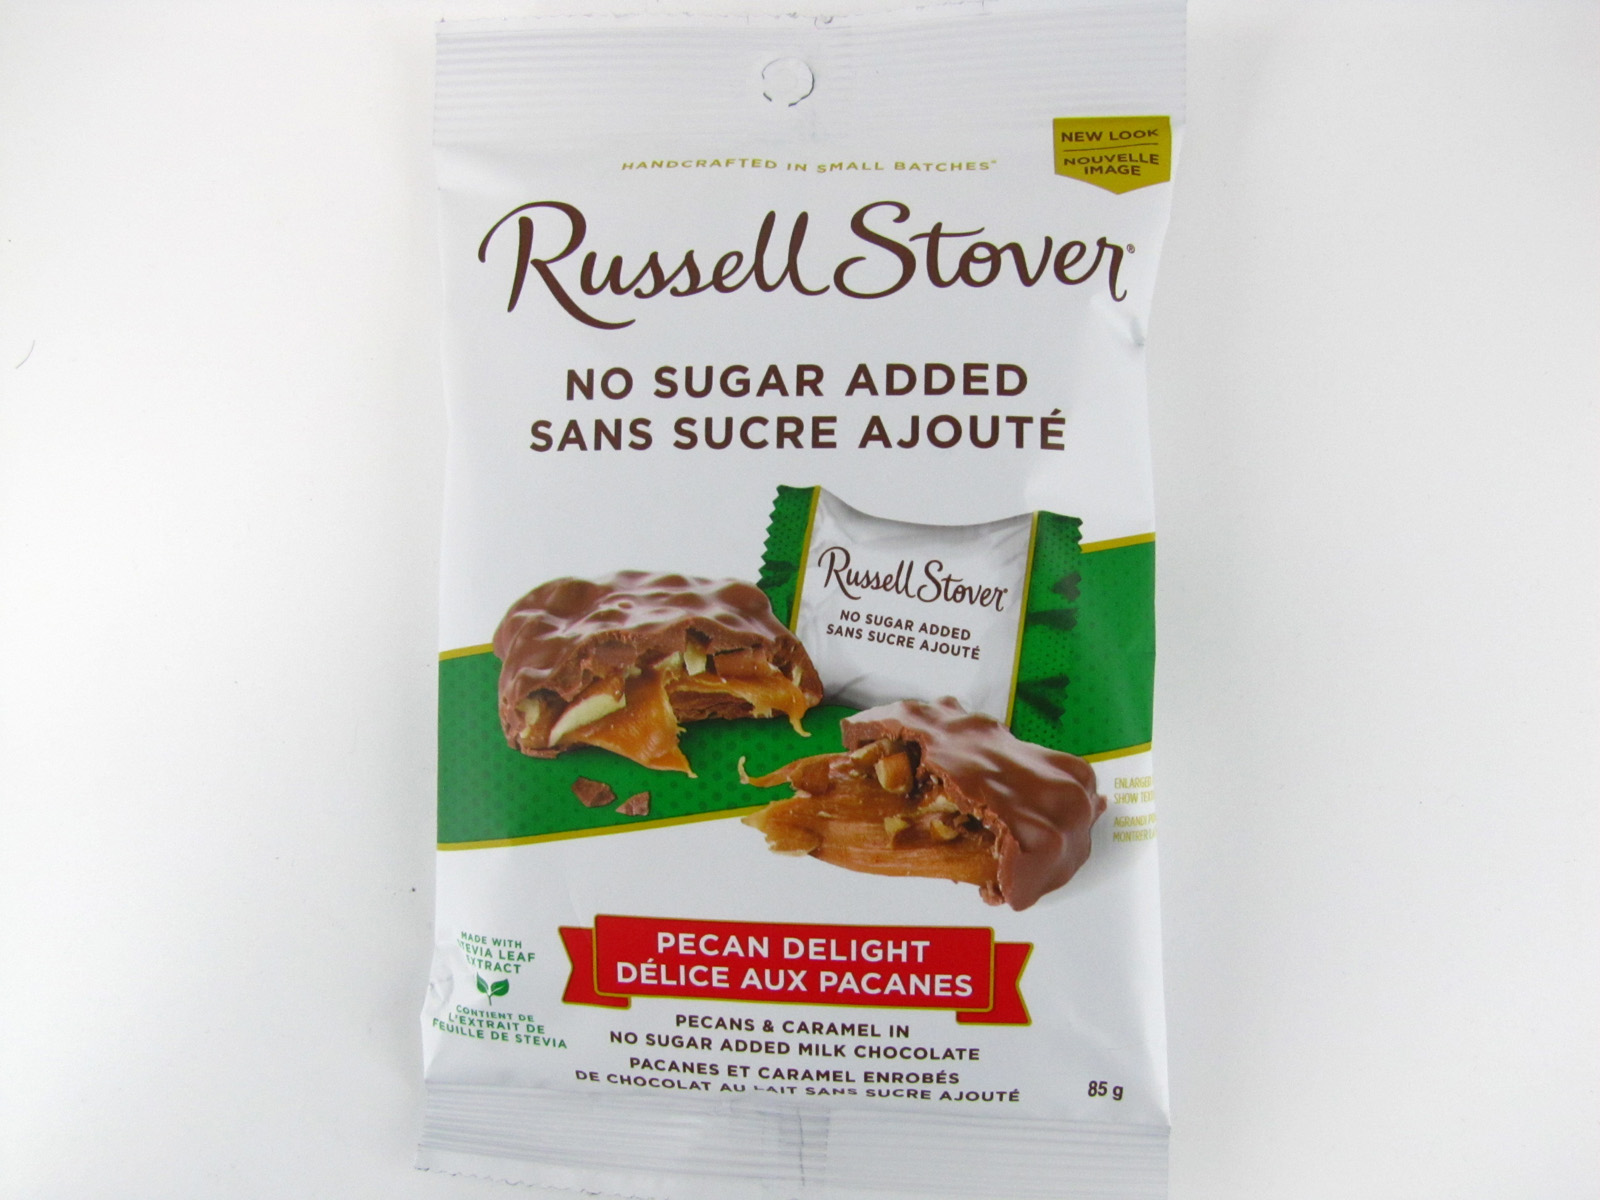 Russell Stover - Pecan Delight - front view